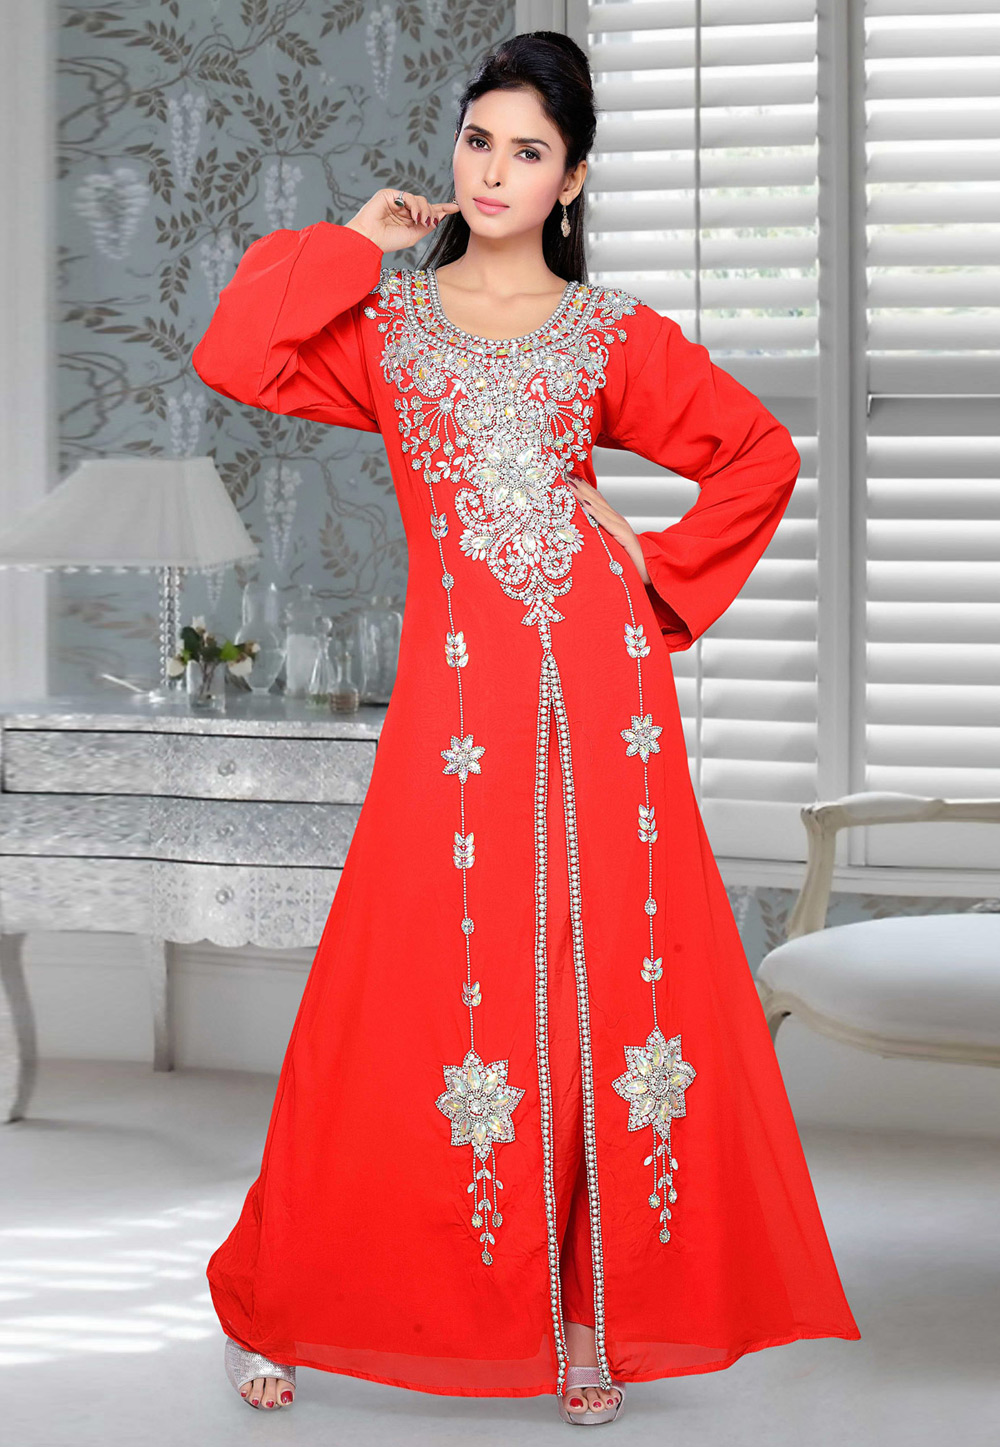 Red Faux Georgette Embroidered Readymade Kaftan 194416